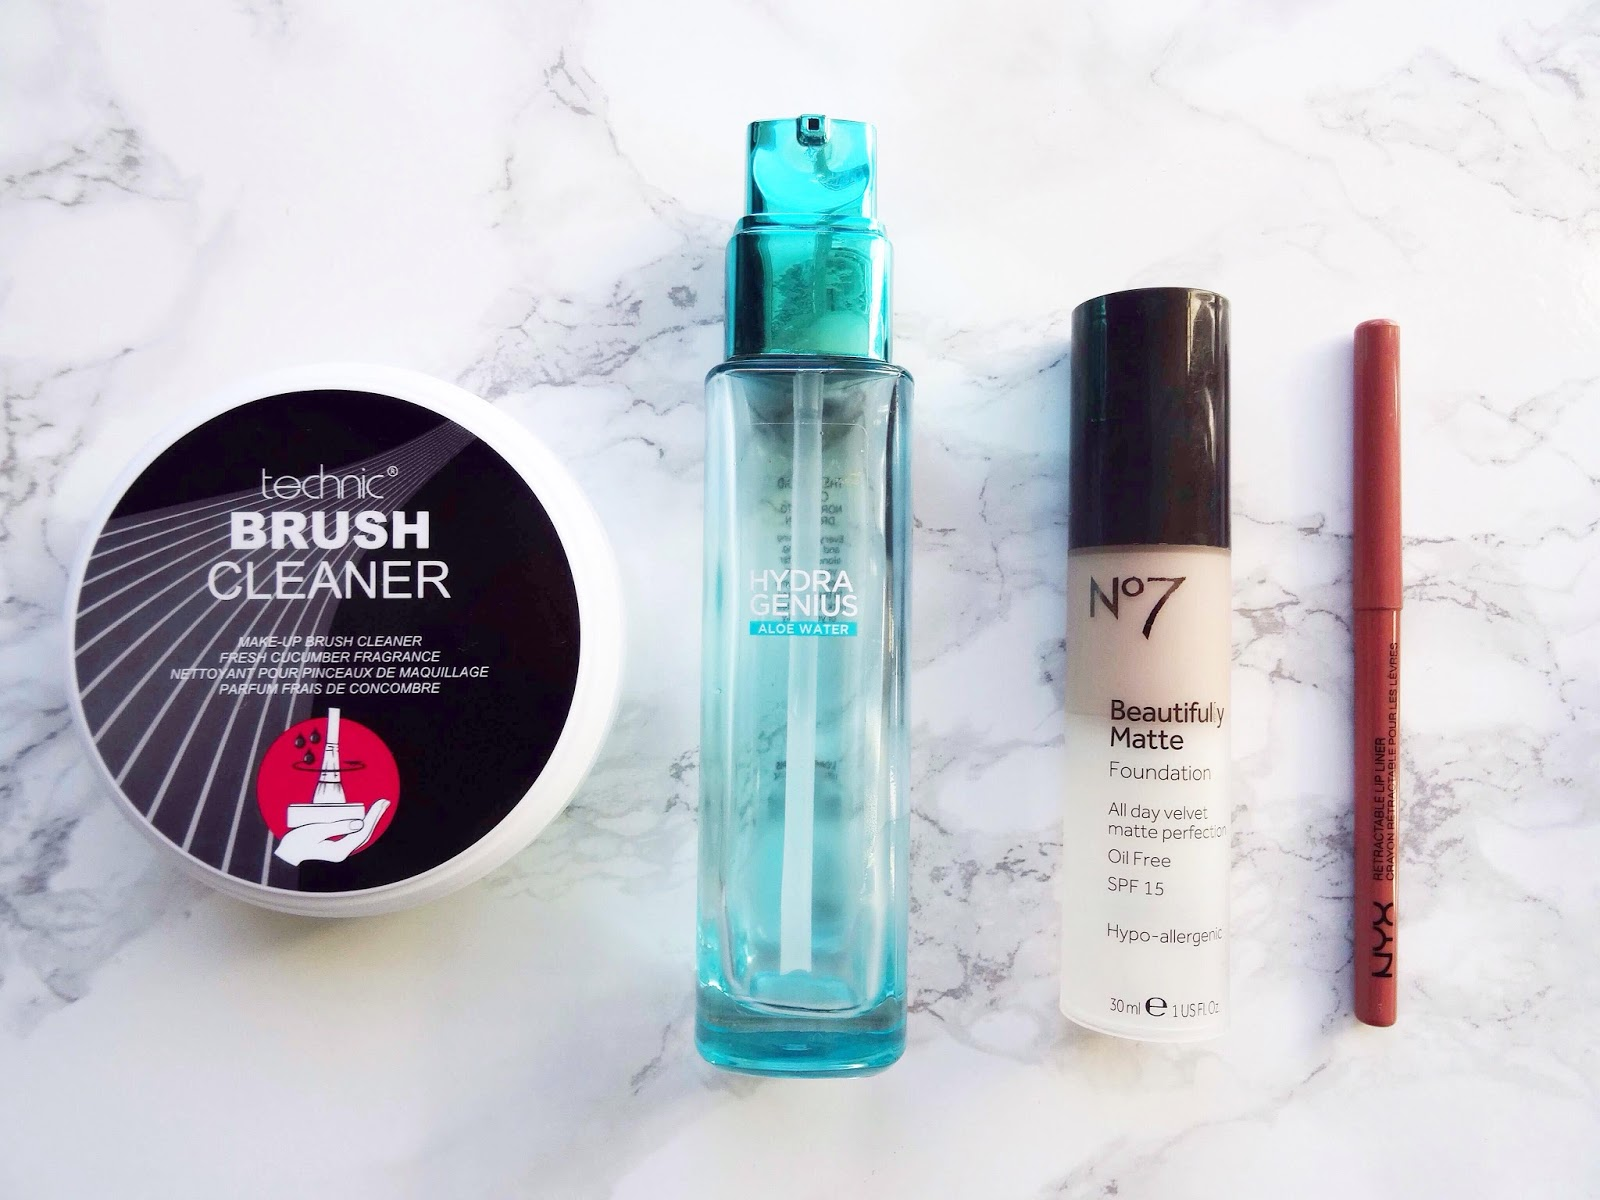 Empties #19 Will I Repurchase? Will Definitely Repurchase!